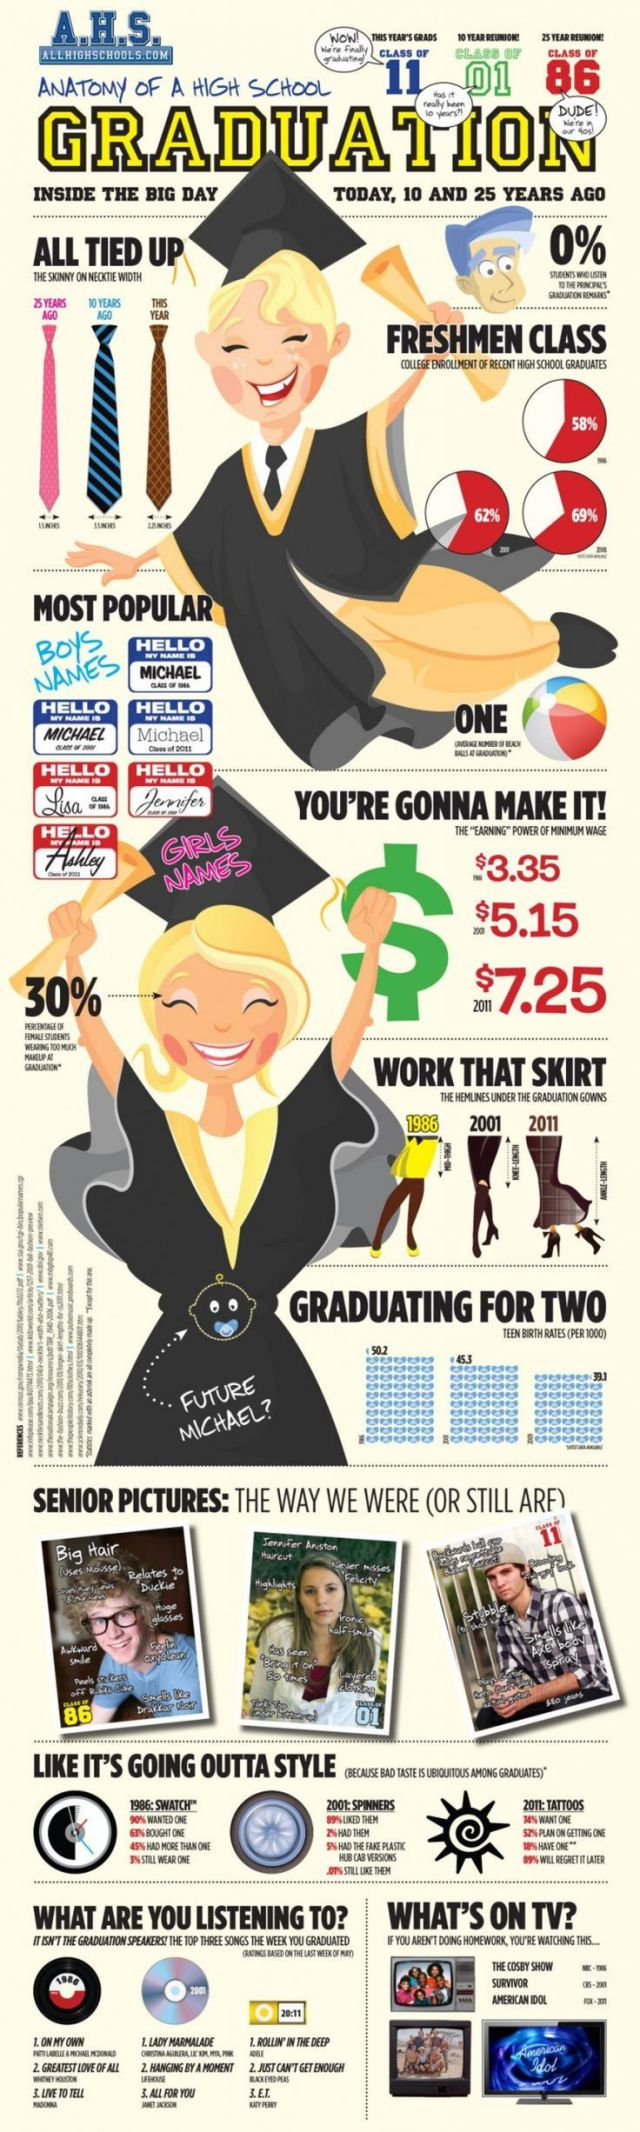 Educational : Graphic Design Project Ideas For High School best ...